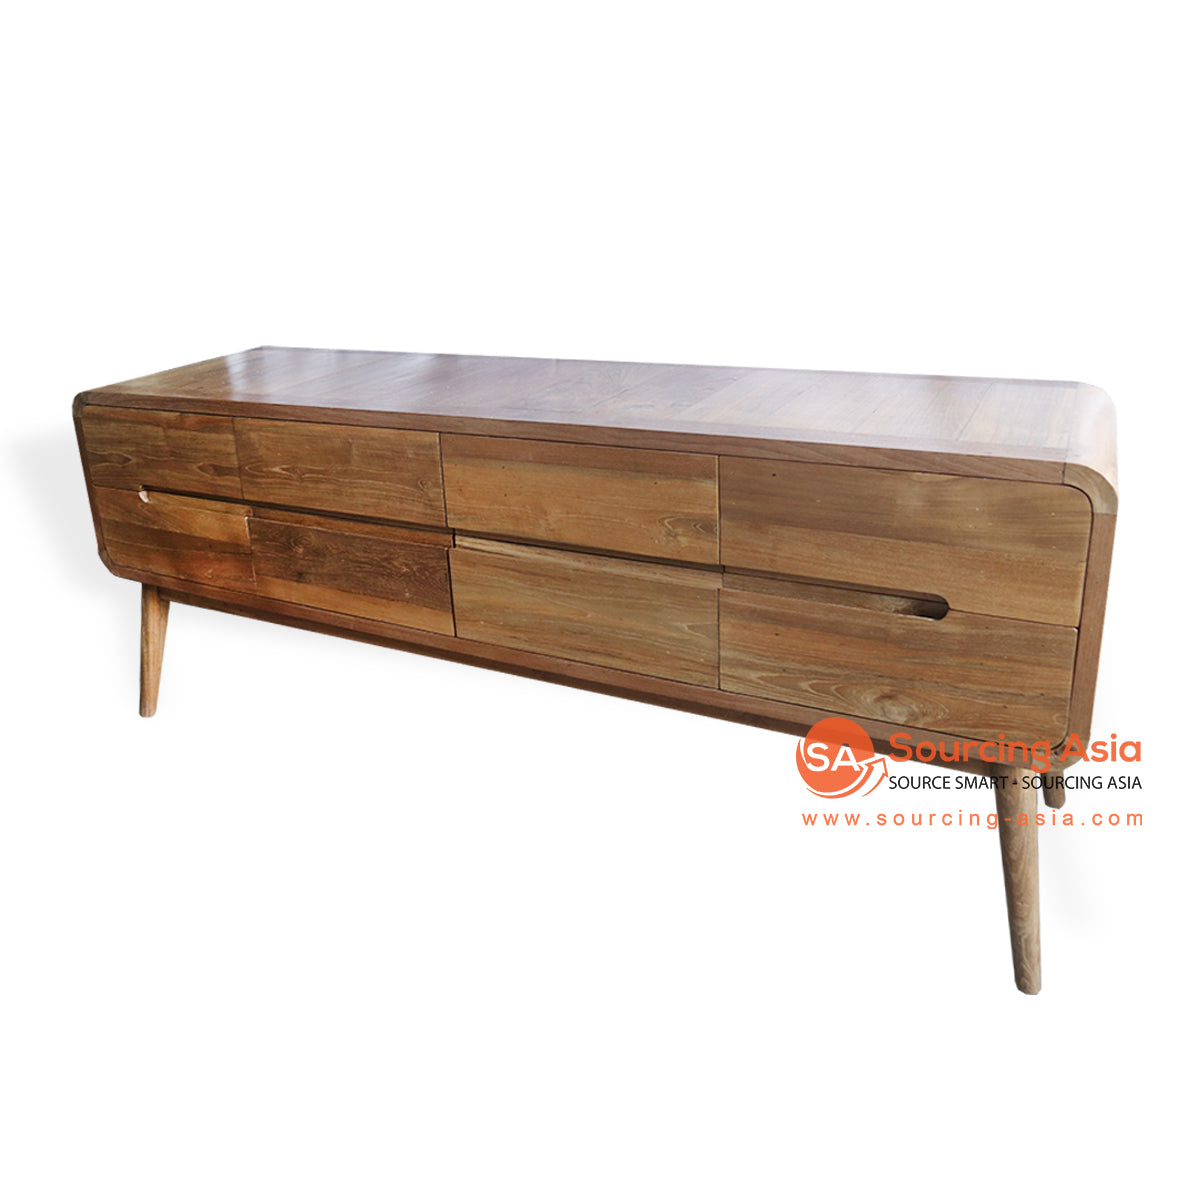 WK274-1 WOODEN BUFFET